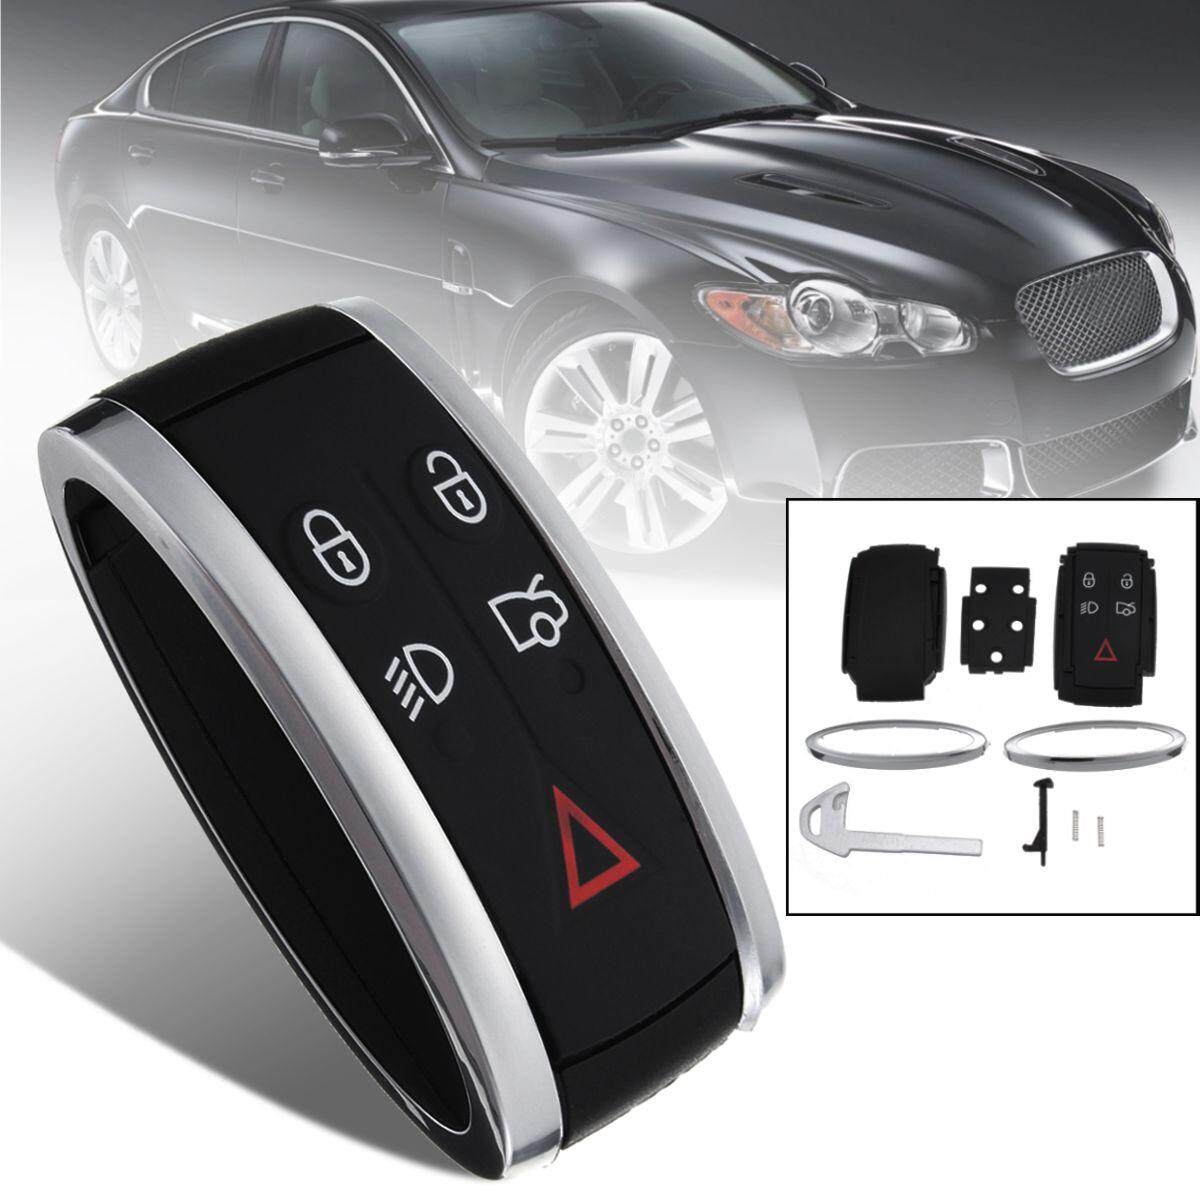 【free Shipping + Flash Deal】5 Buttons Keyless Remote Key Fob Case Shell W/ Uncut Blade For Jaguar Xf Xk By Haldis.